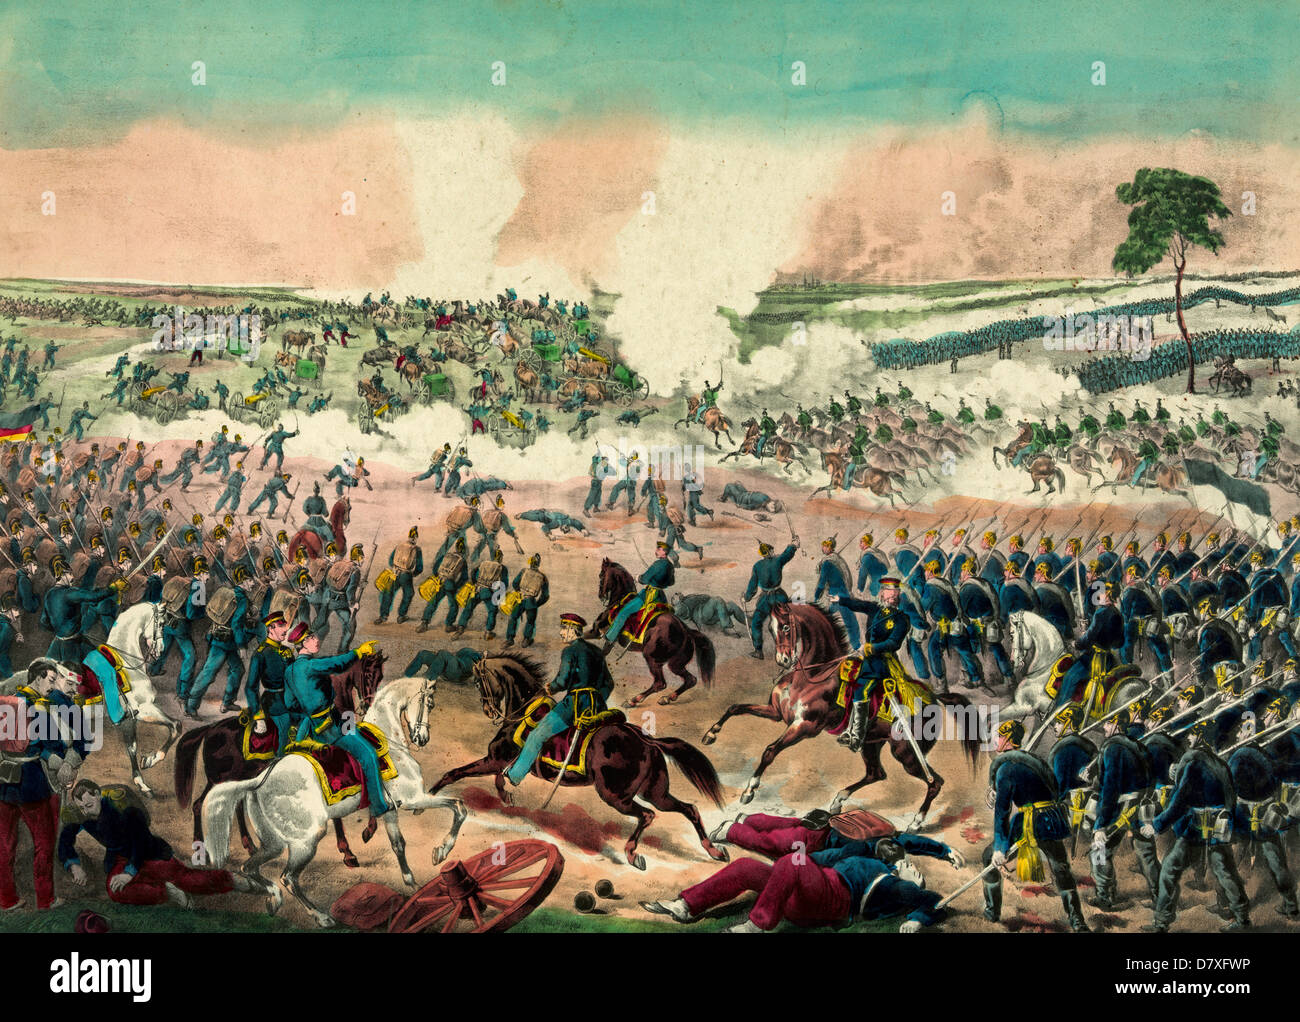 Battle of Weissenburg - 4th August 1870 during the Franco-Prussian War - Stock Image